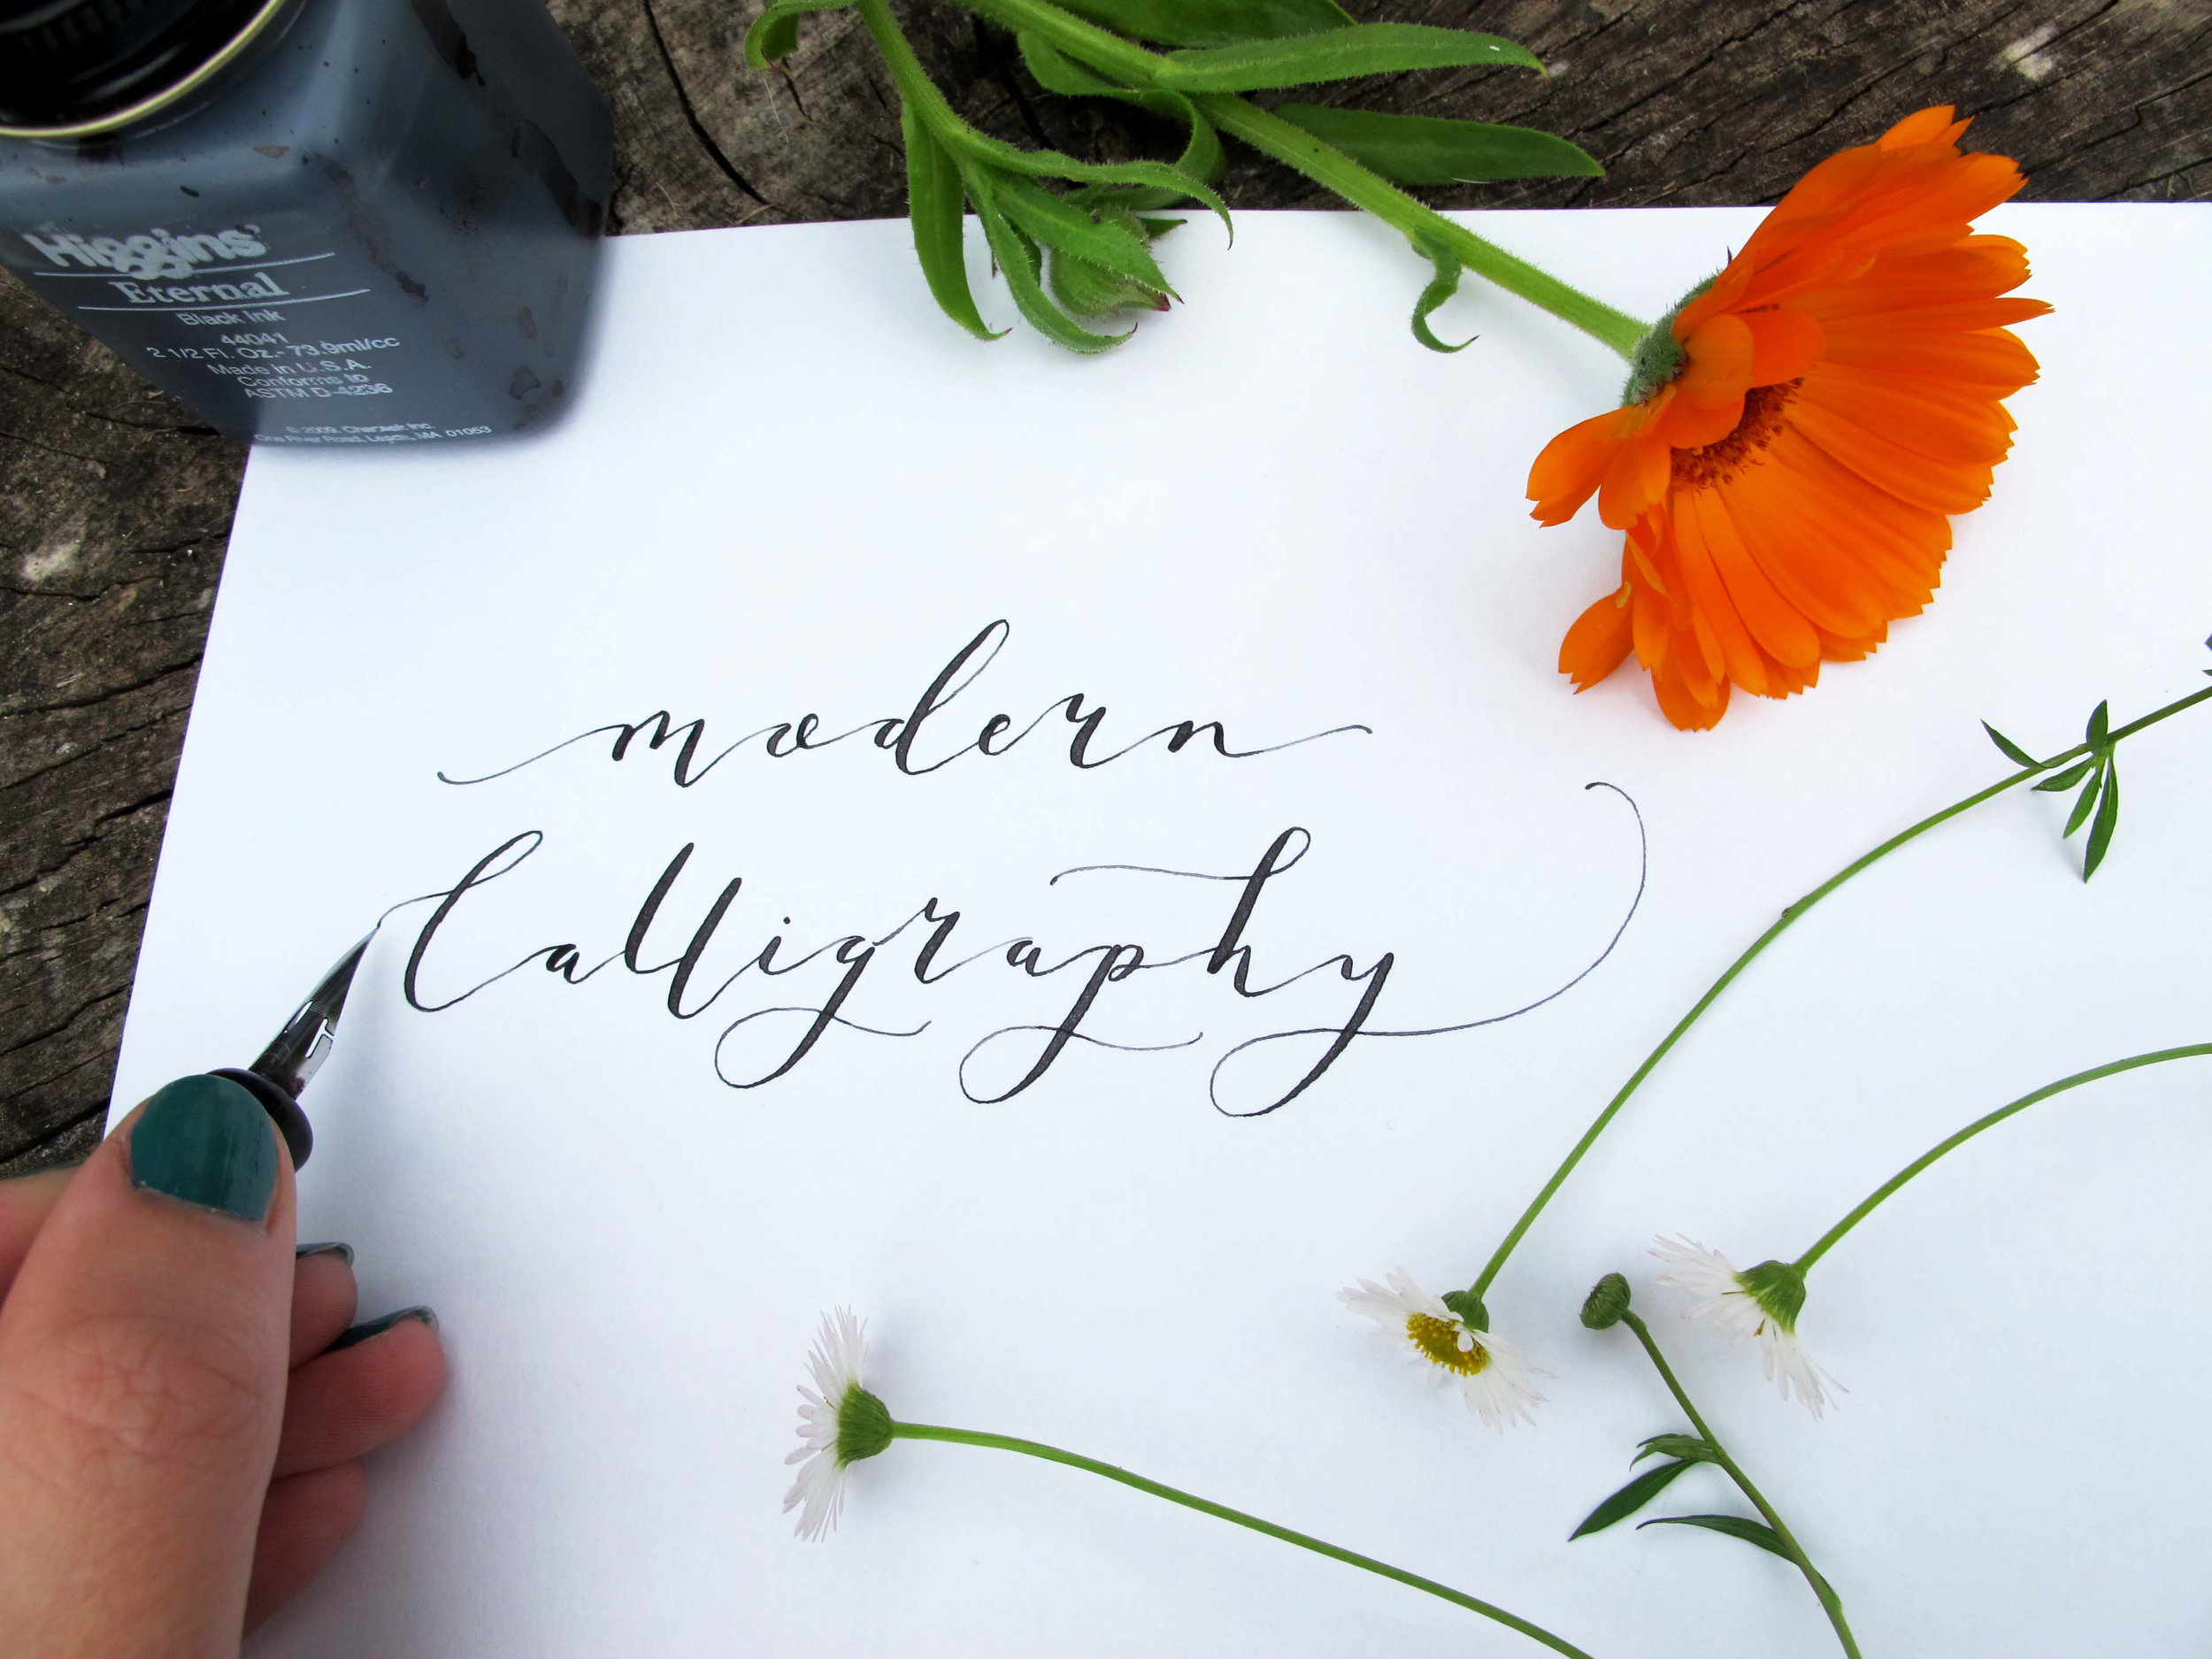 I'm happy to announce dates for Modern Calligraphy workshops taking place at Fisherton Mill Gallery in Salisbury. Do you fancy learning this beautiful art form based on traditional calligraphy? If so do get in touch! Dates are as follows:  Tuesday 17th October -  Introduction to Modern Calligraphy  6 - 8.30PM £35 (includes starter kit)  Wednesday 25th October -  Introduction to Modern Calligraphy  6 - 8.30PM £35 (includes starter kit)  Tuesday 14th November -  Modern Calligraphy for Improvers  6-8.30PM £35 (kit included)  Saturday 18th November -  Christmas themed Modern Calligraphy workshop  2-4.30pm £35 (kit included)  I hope to see some of you there! if you are interested or would like to book a place please email me: mclean.francesca@gmail.com